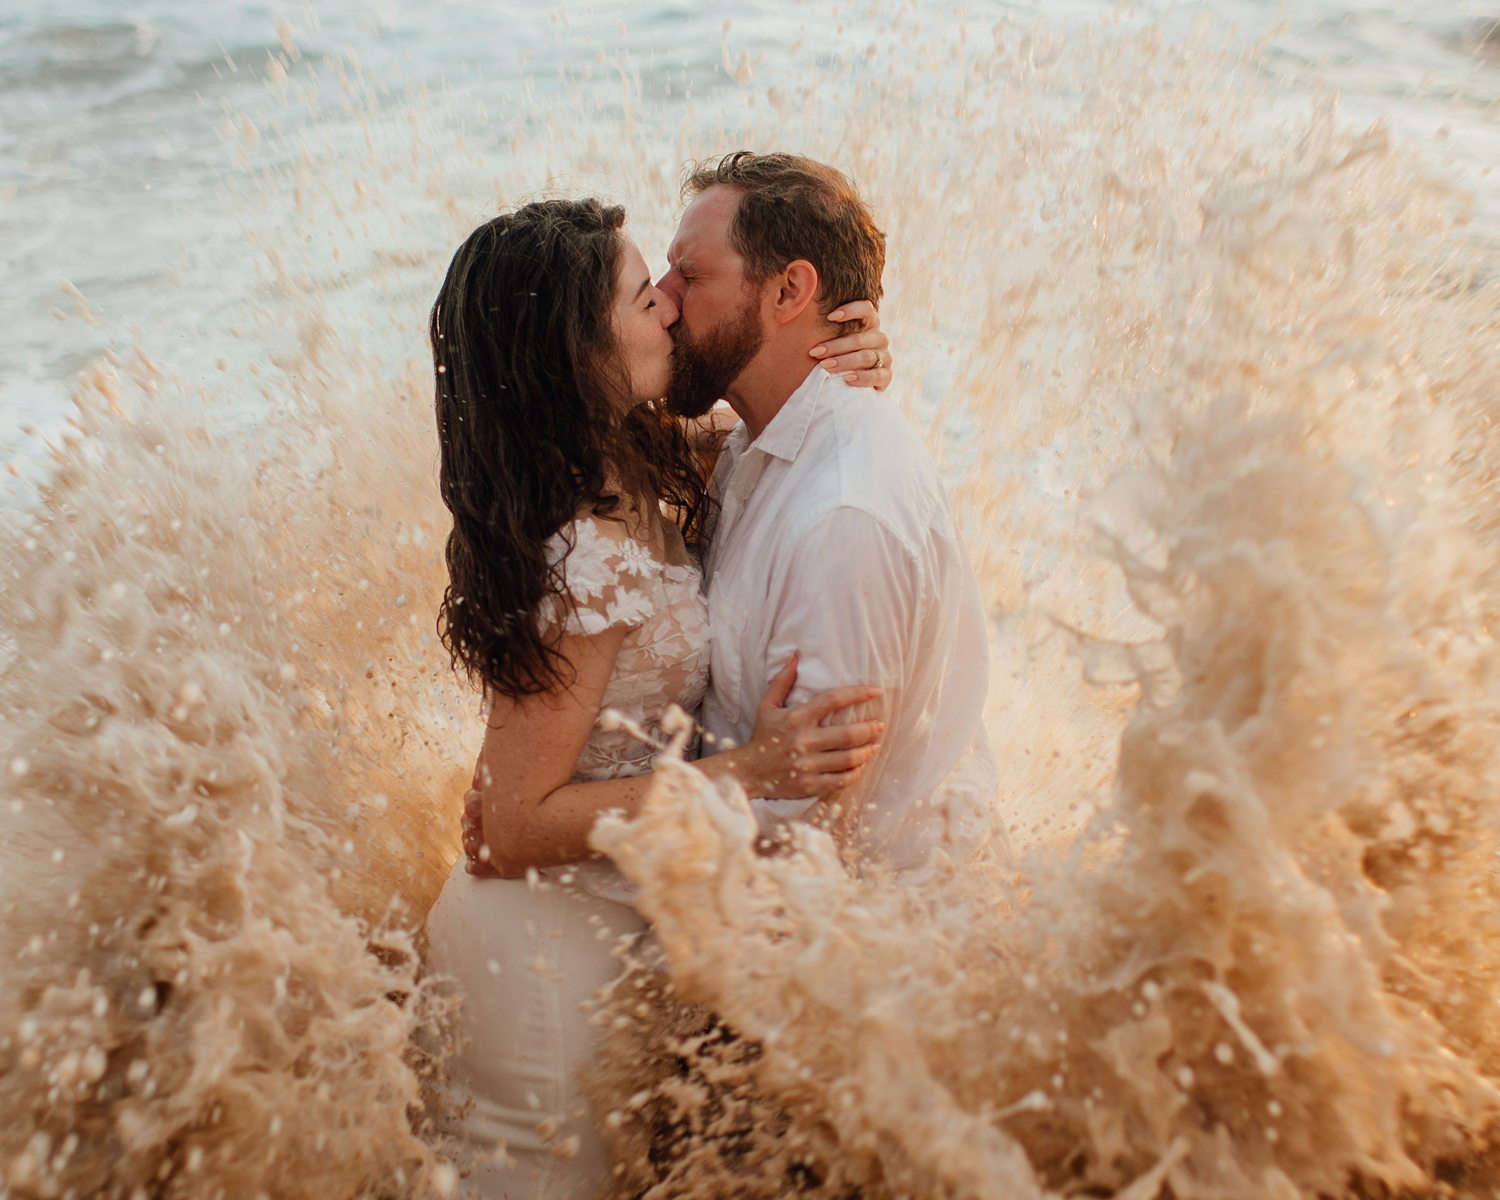 Couple S Beach Wedding Photo Shoot Goes Awry Then Viral